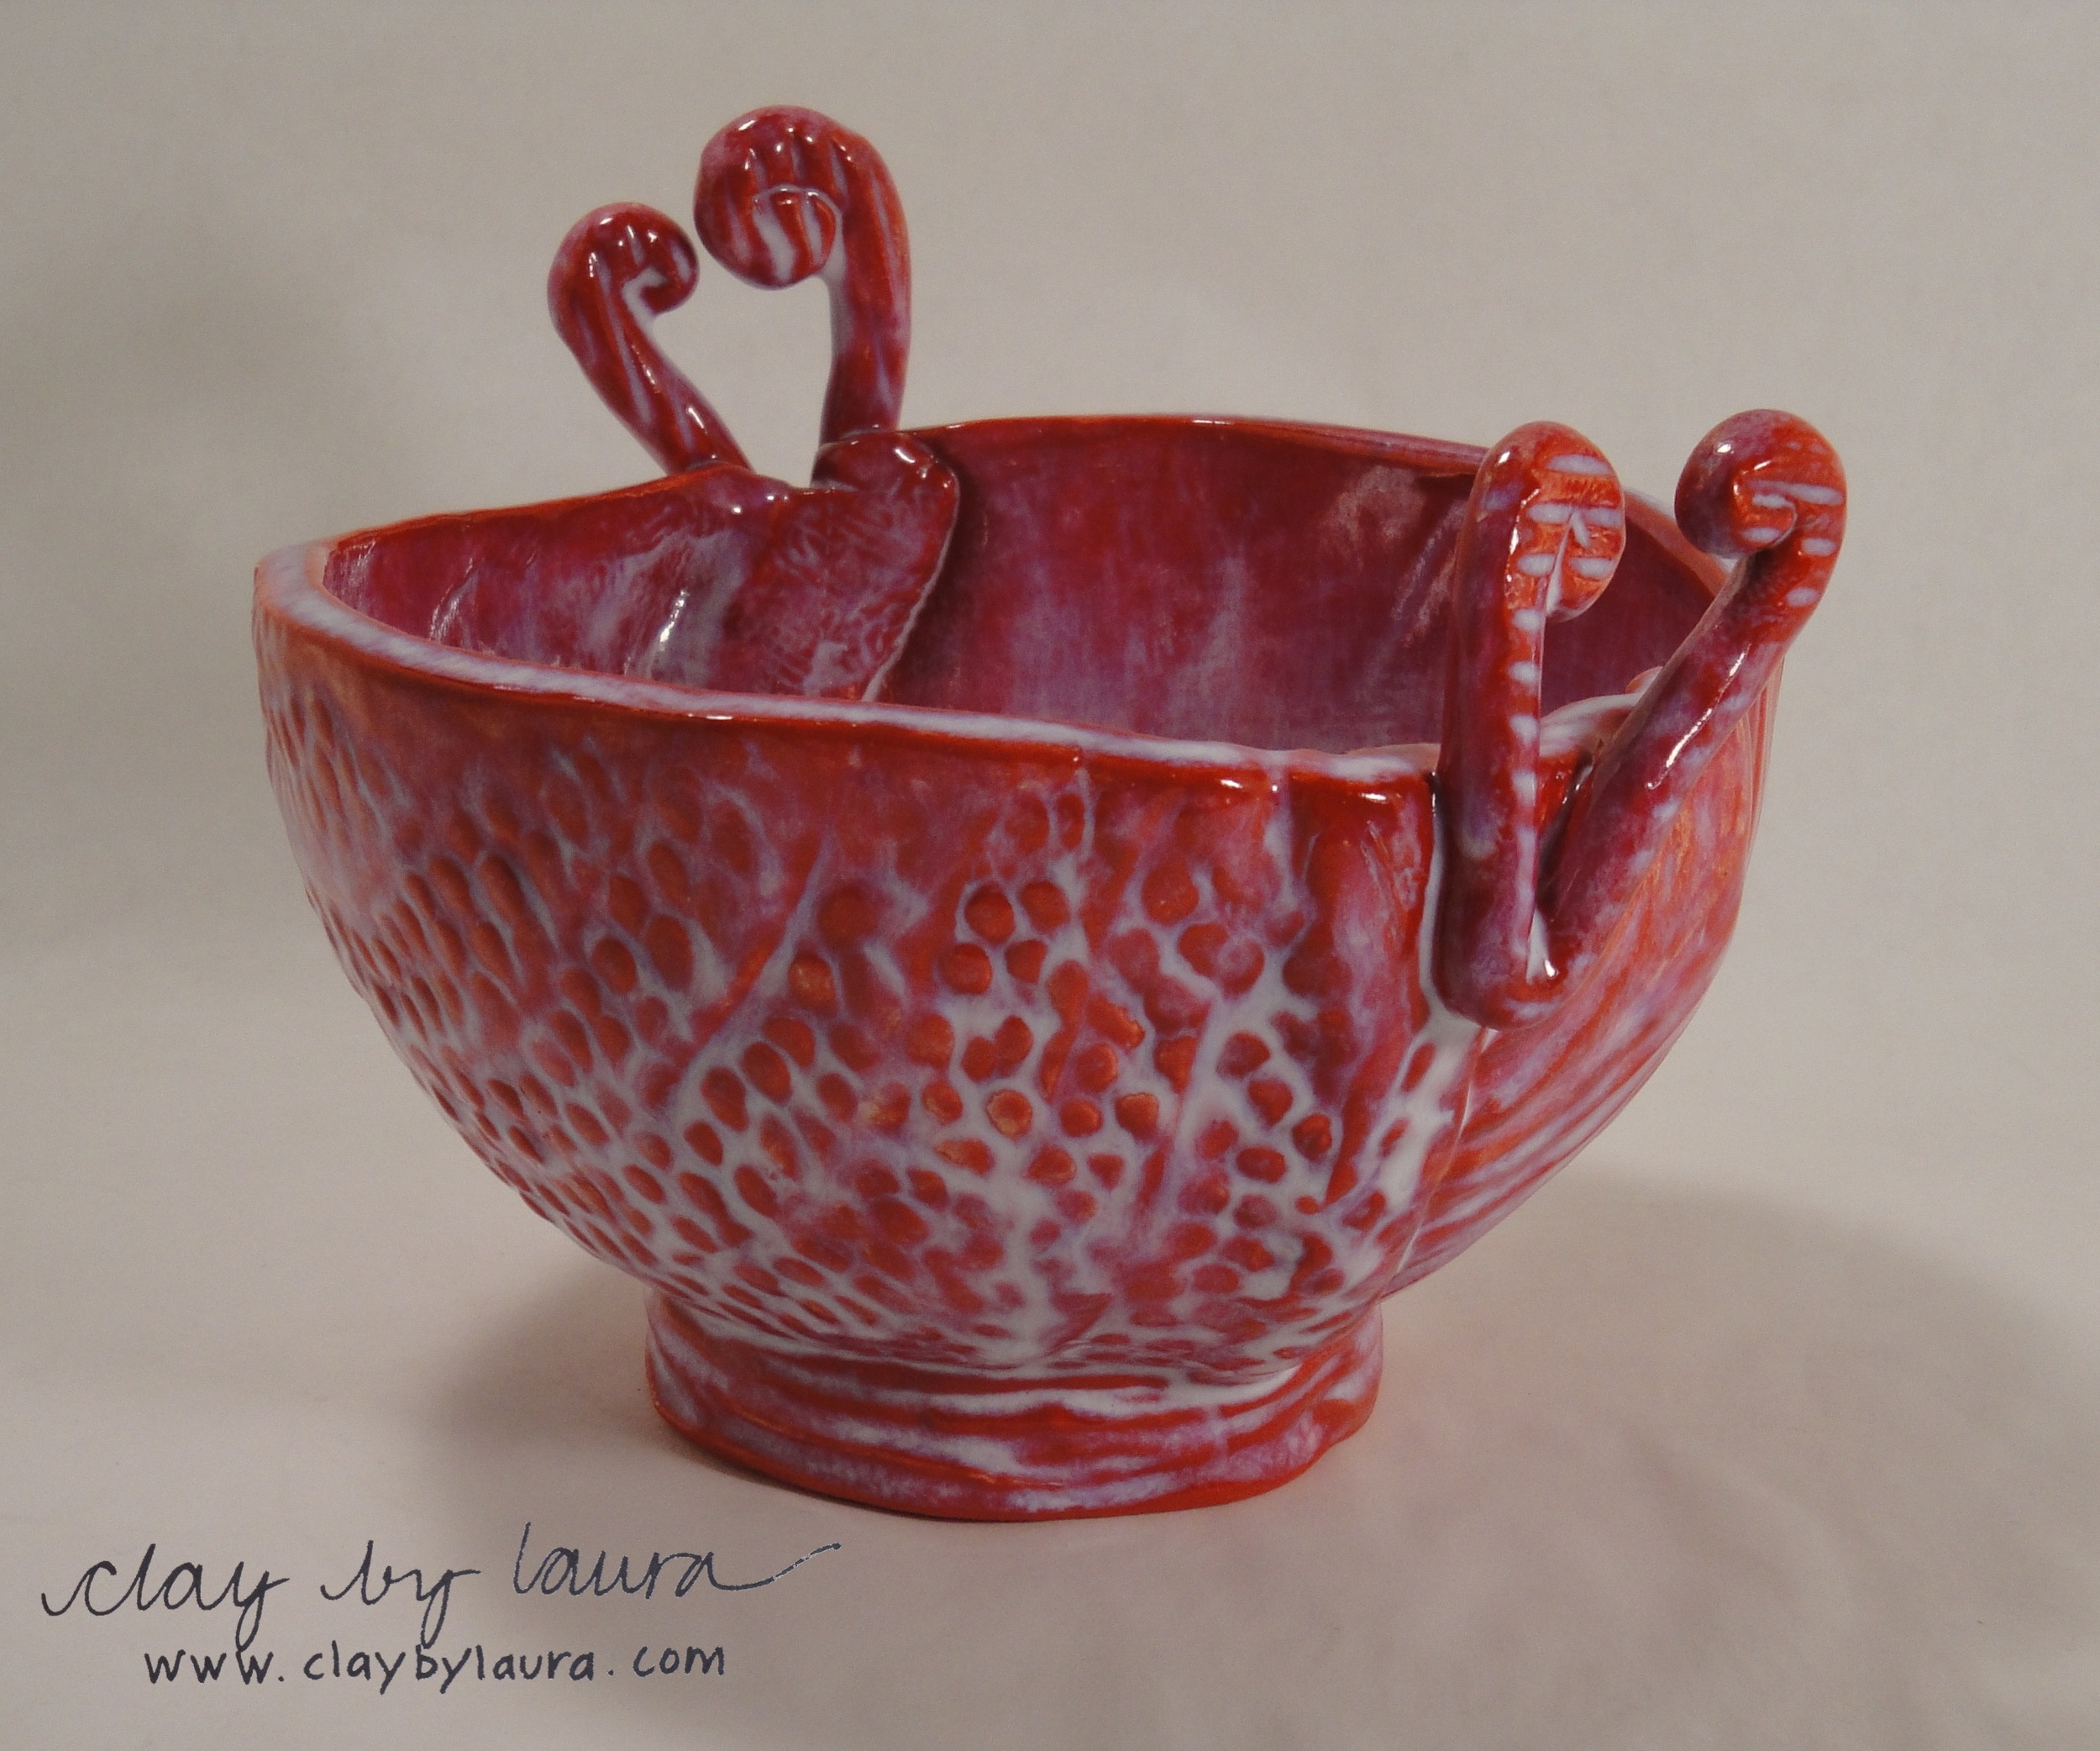 The heart-shaped handle of the Yarn Bowl helps guide the fiber when in use, or simplyprovides a loving symbol for this multi-functional container. $48 will send one of these to a special someone.